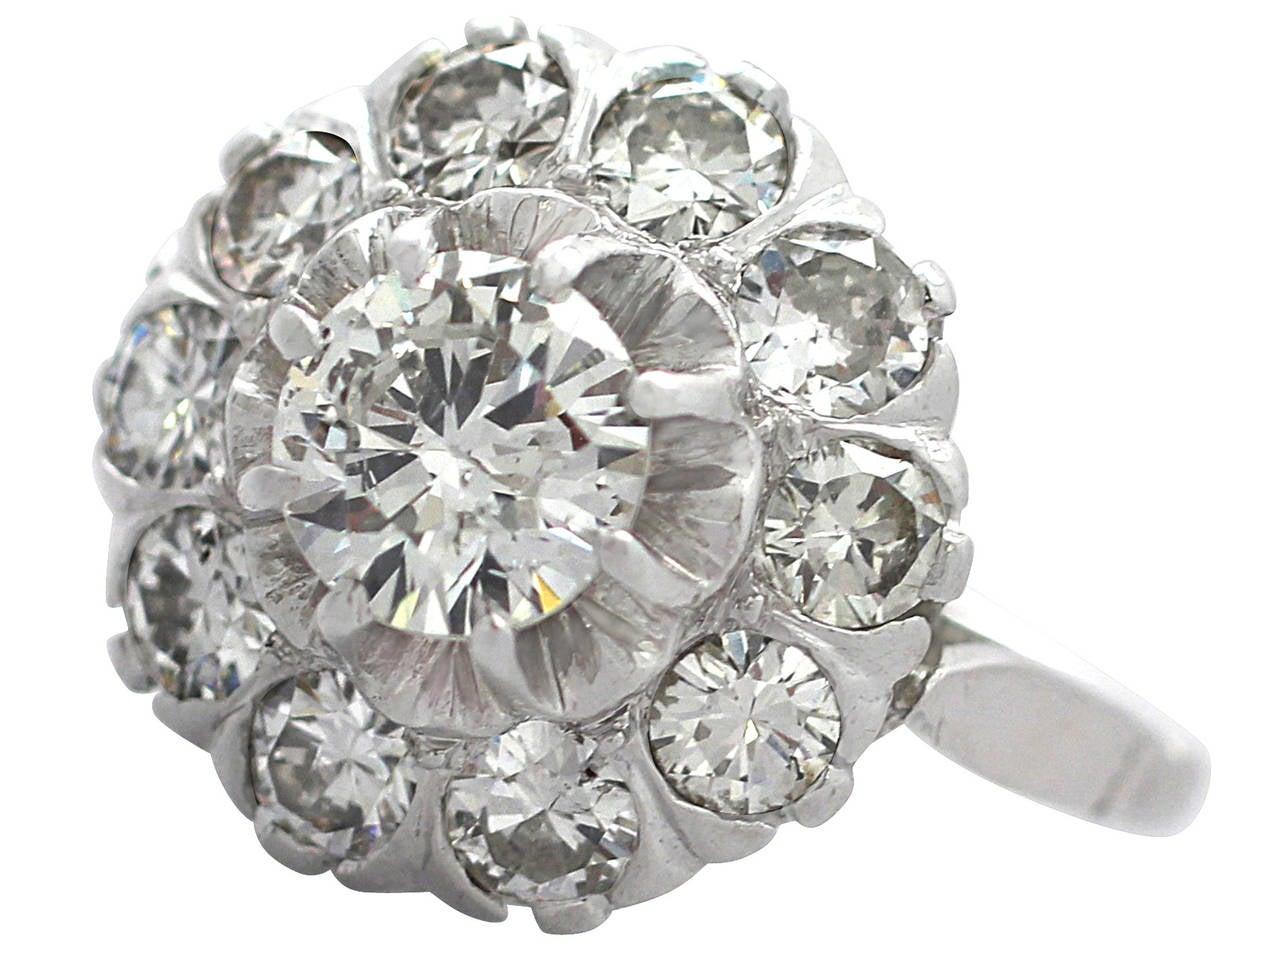 A stunning, fine and impressive antique 1.35 carat diamond and 18 carat white gold cluster ring; part of our vintage jewelry and estate jewelry collections  This stunning vintage diamond cluster ring has been crafted in 18k white gold.  The pierced